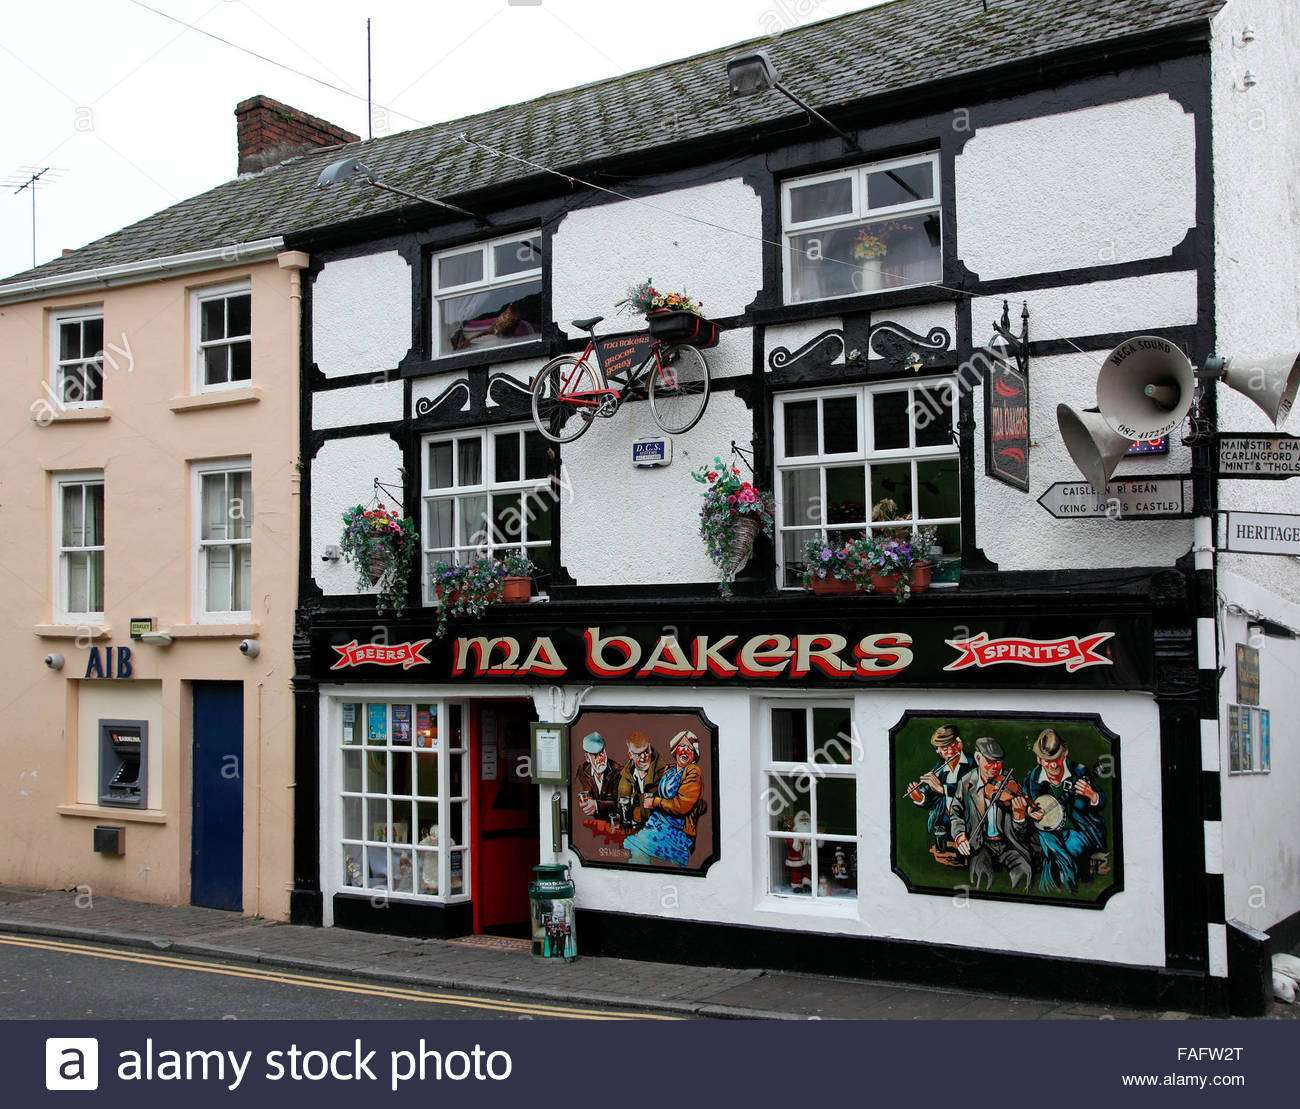 ma-bakers-licenced-grocer-and-pub-in-carlingford-FAFW2T